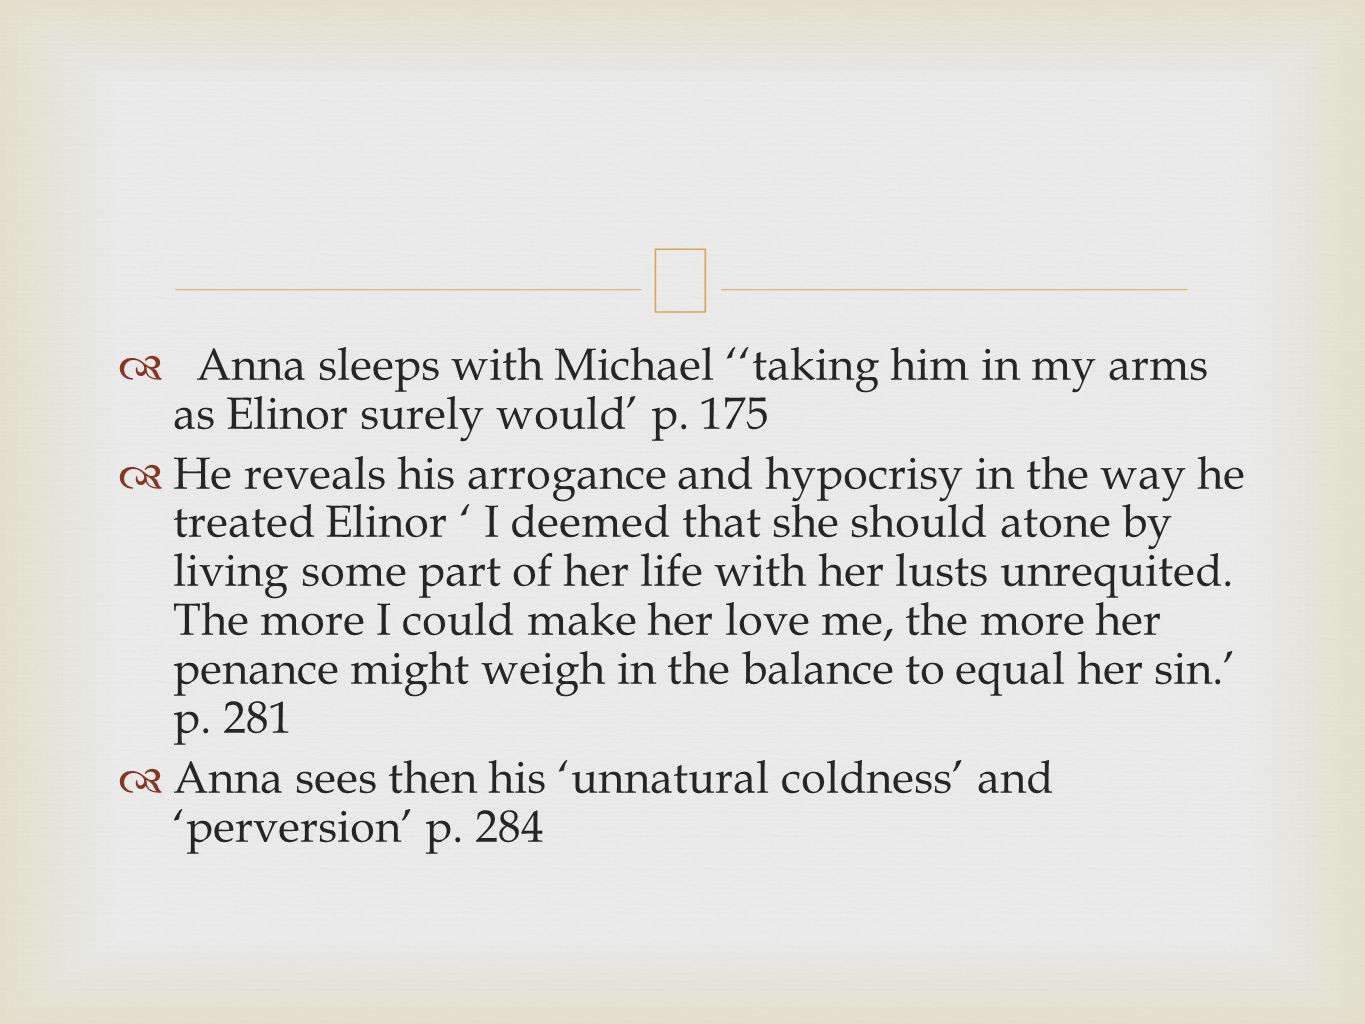 Anna sleeps with Michael taking him in my arms as Elinor surely would p.